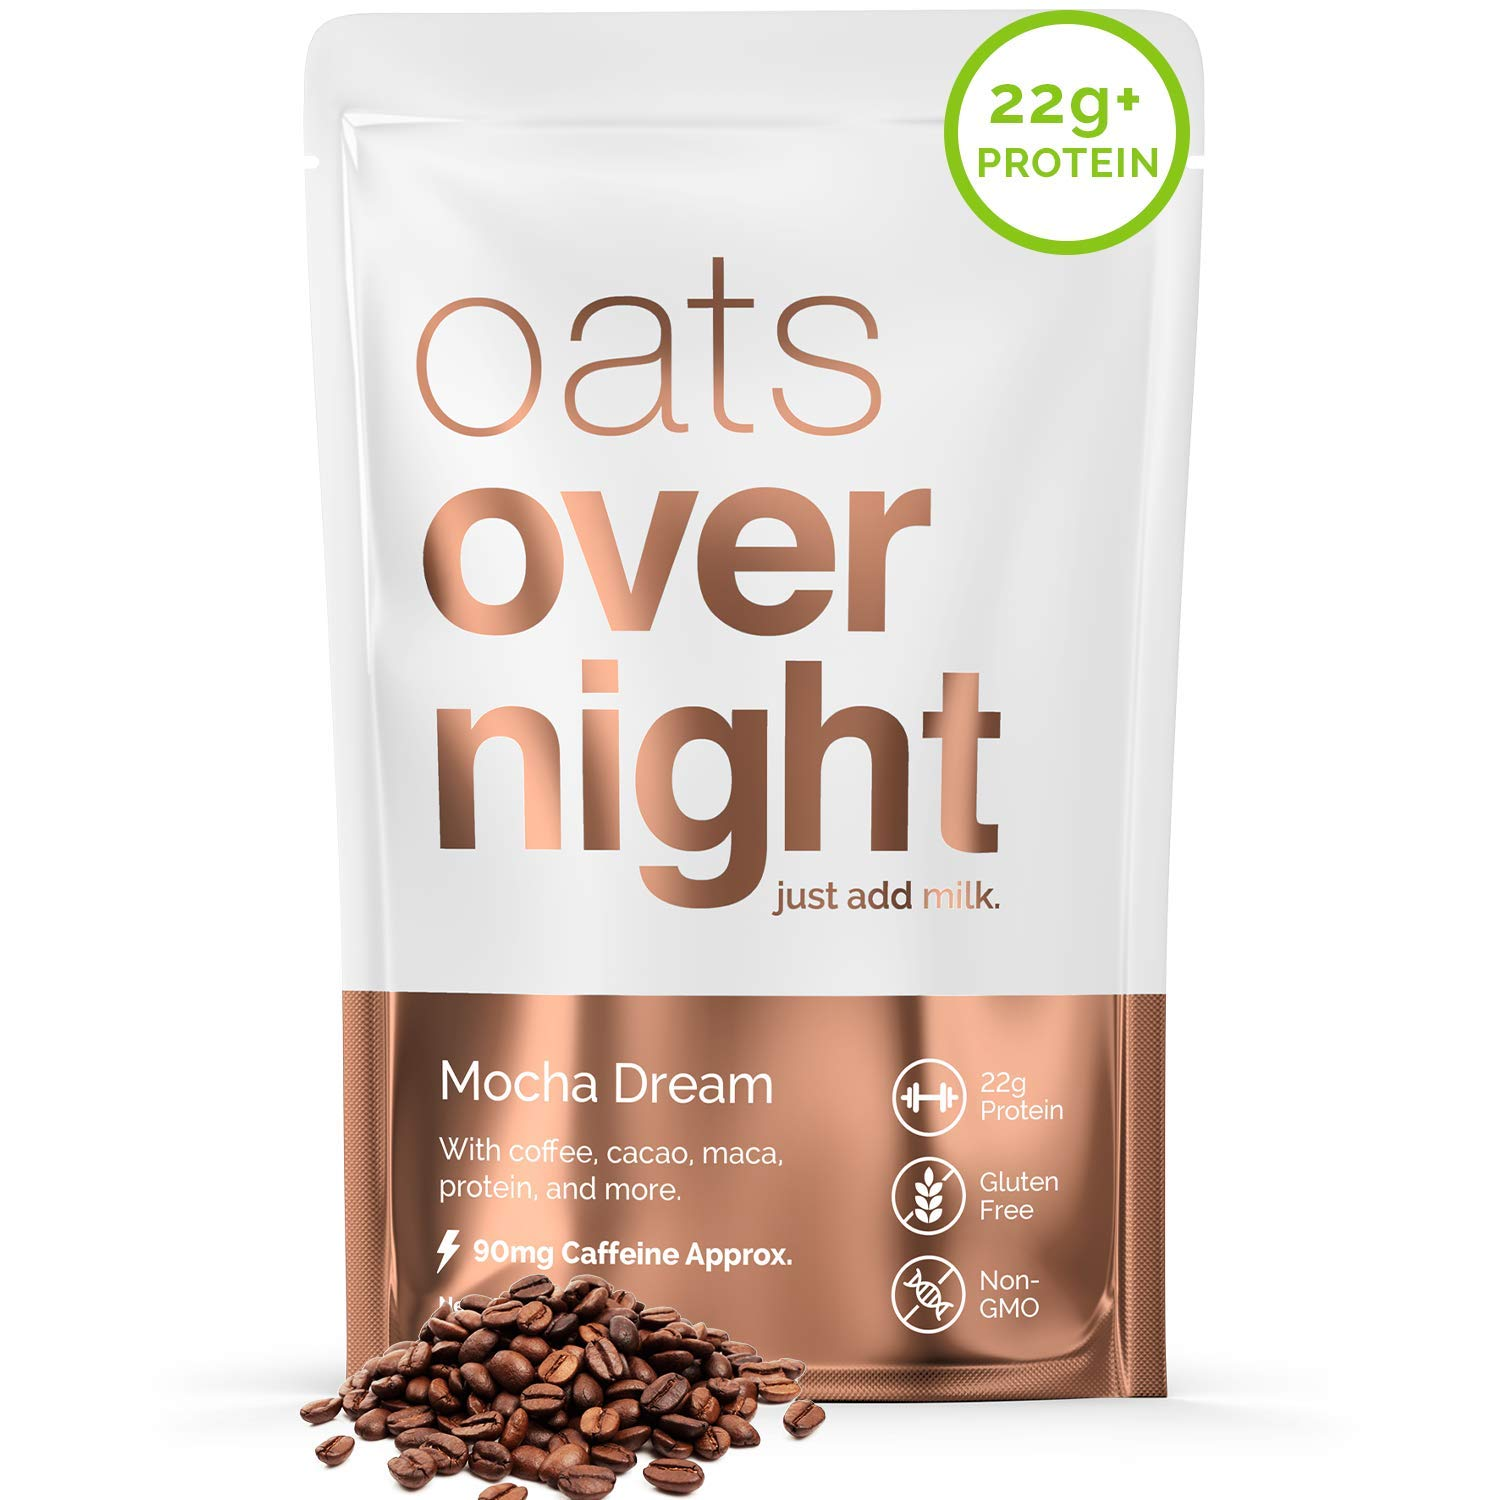 Oats Overnight - Mocha Dream (16 Pack) High Protein, Low Sugar Breakfast with Coffee - Gluten Free, High Fiber, Non GMO Oatmeal (2.7oz per pack)